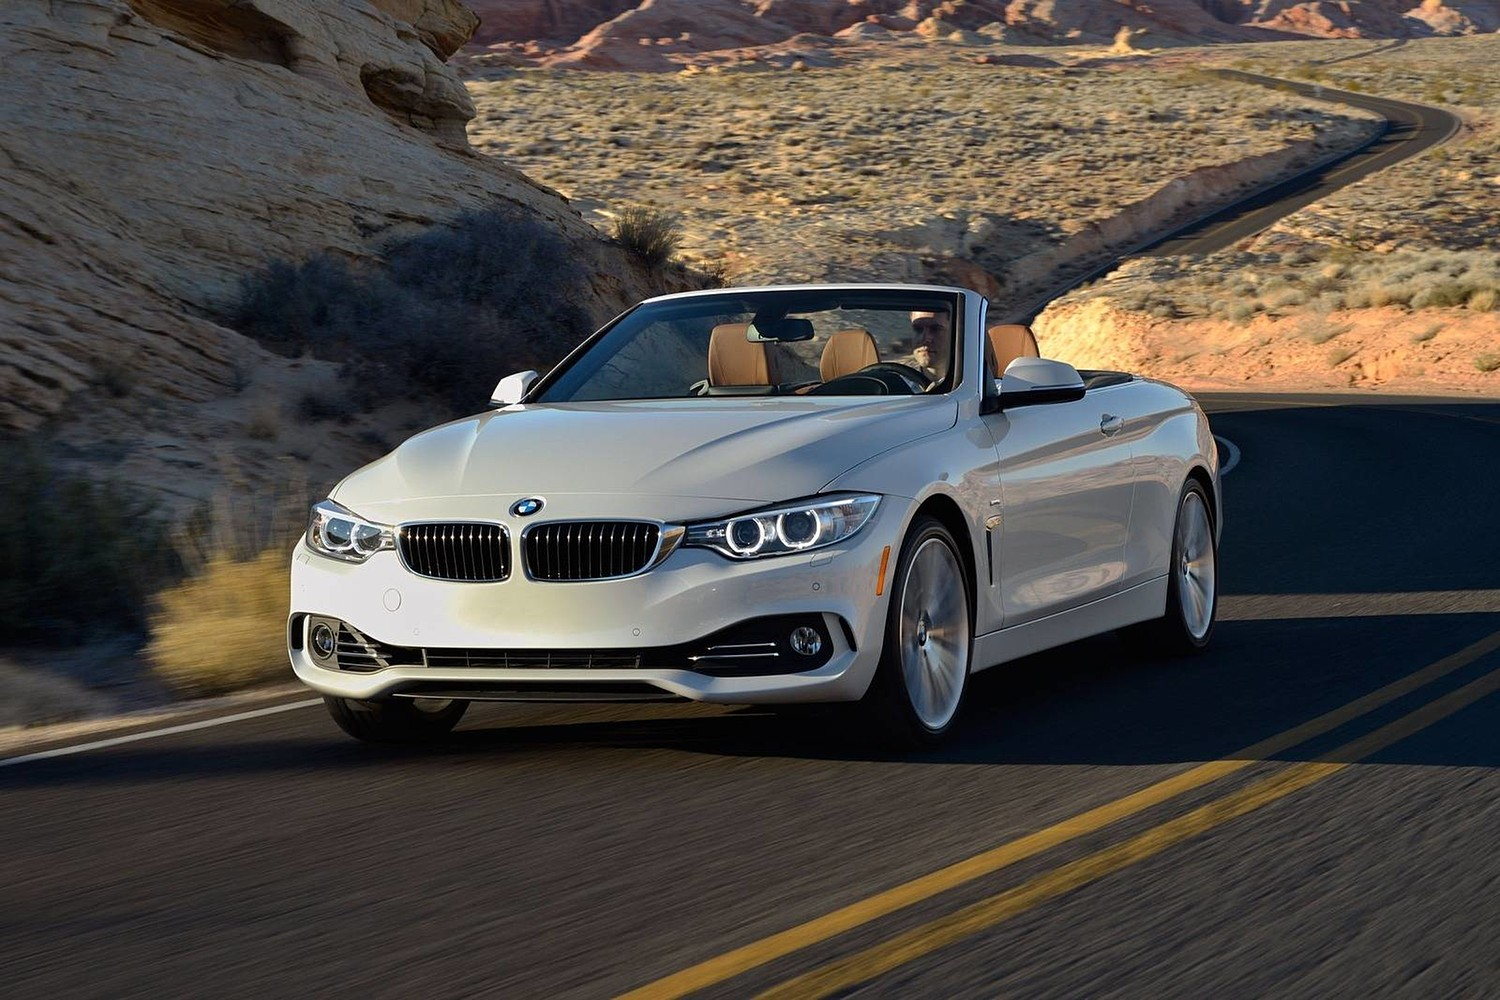 2017 BMW 4 Series 440i Convertible Exterior. Luxury Line Package Shown.